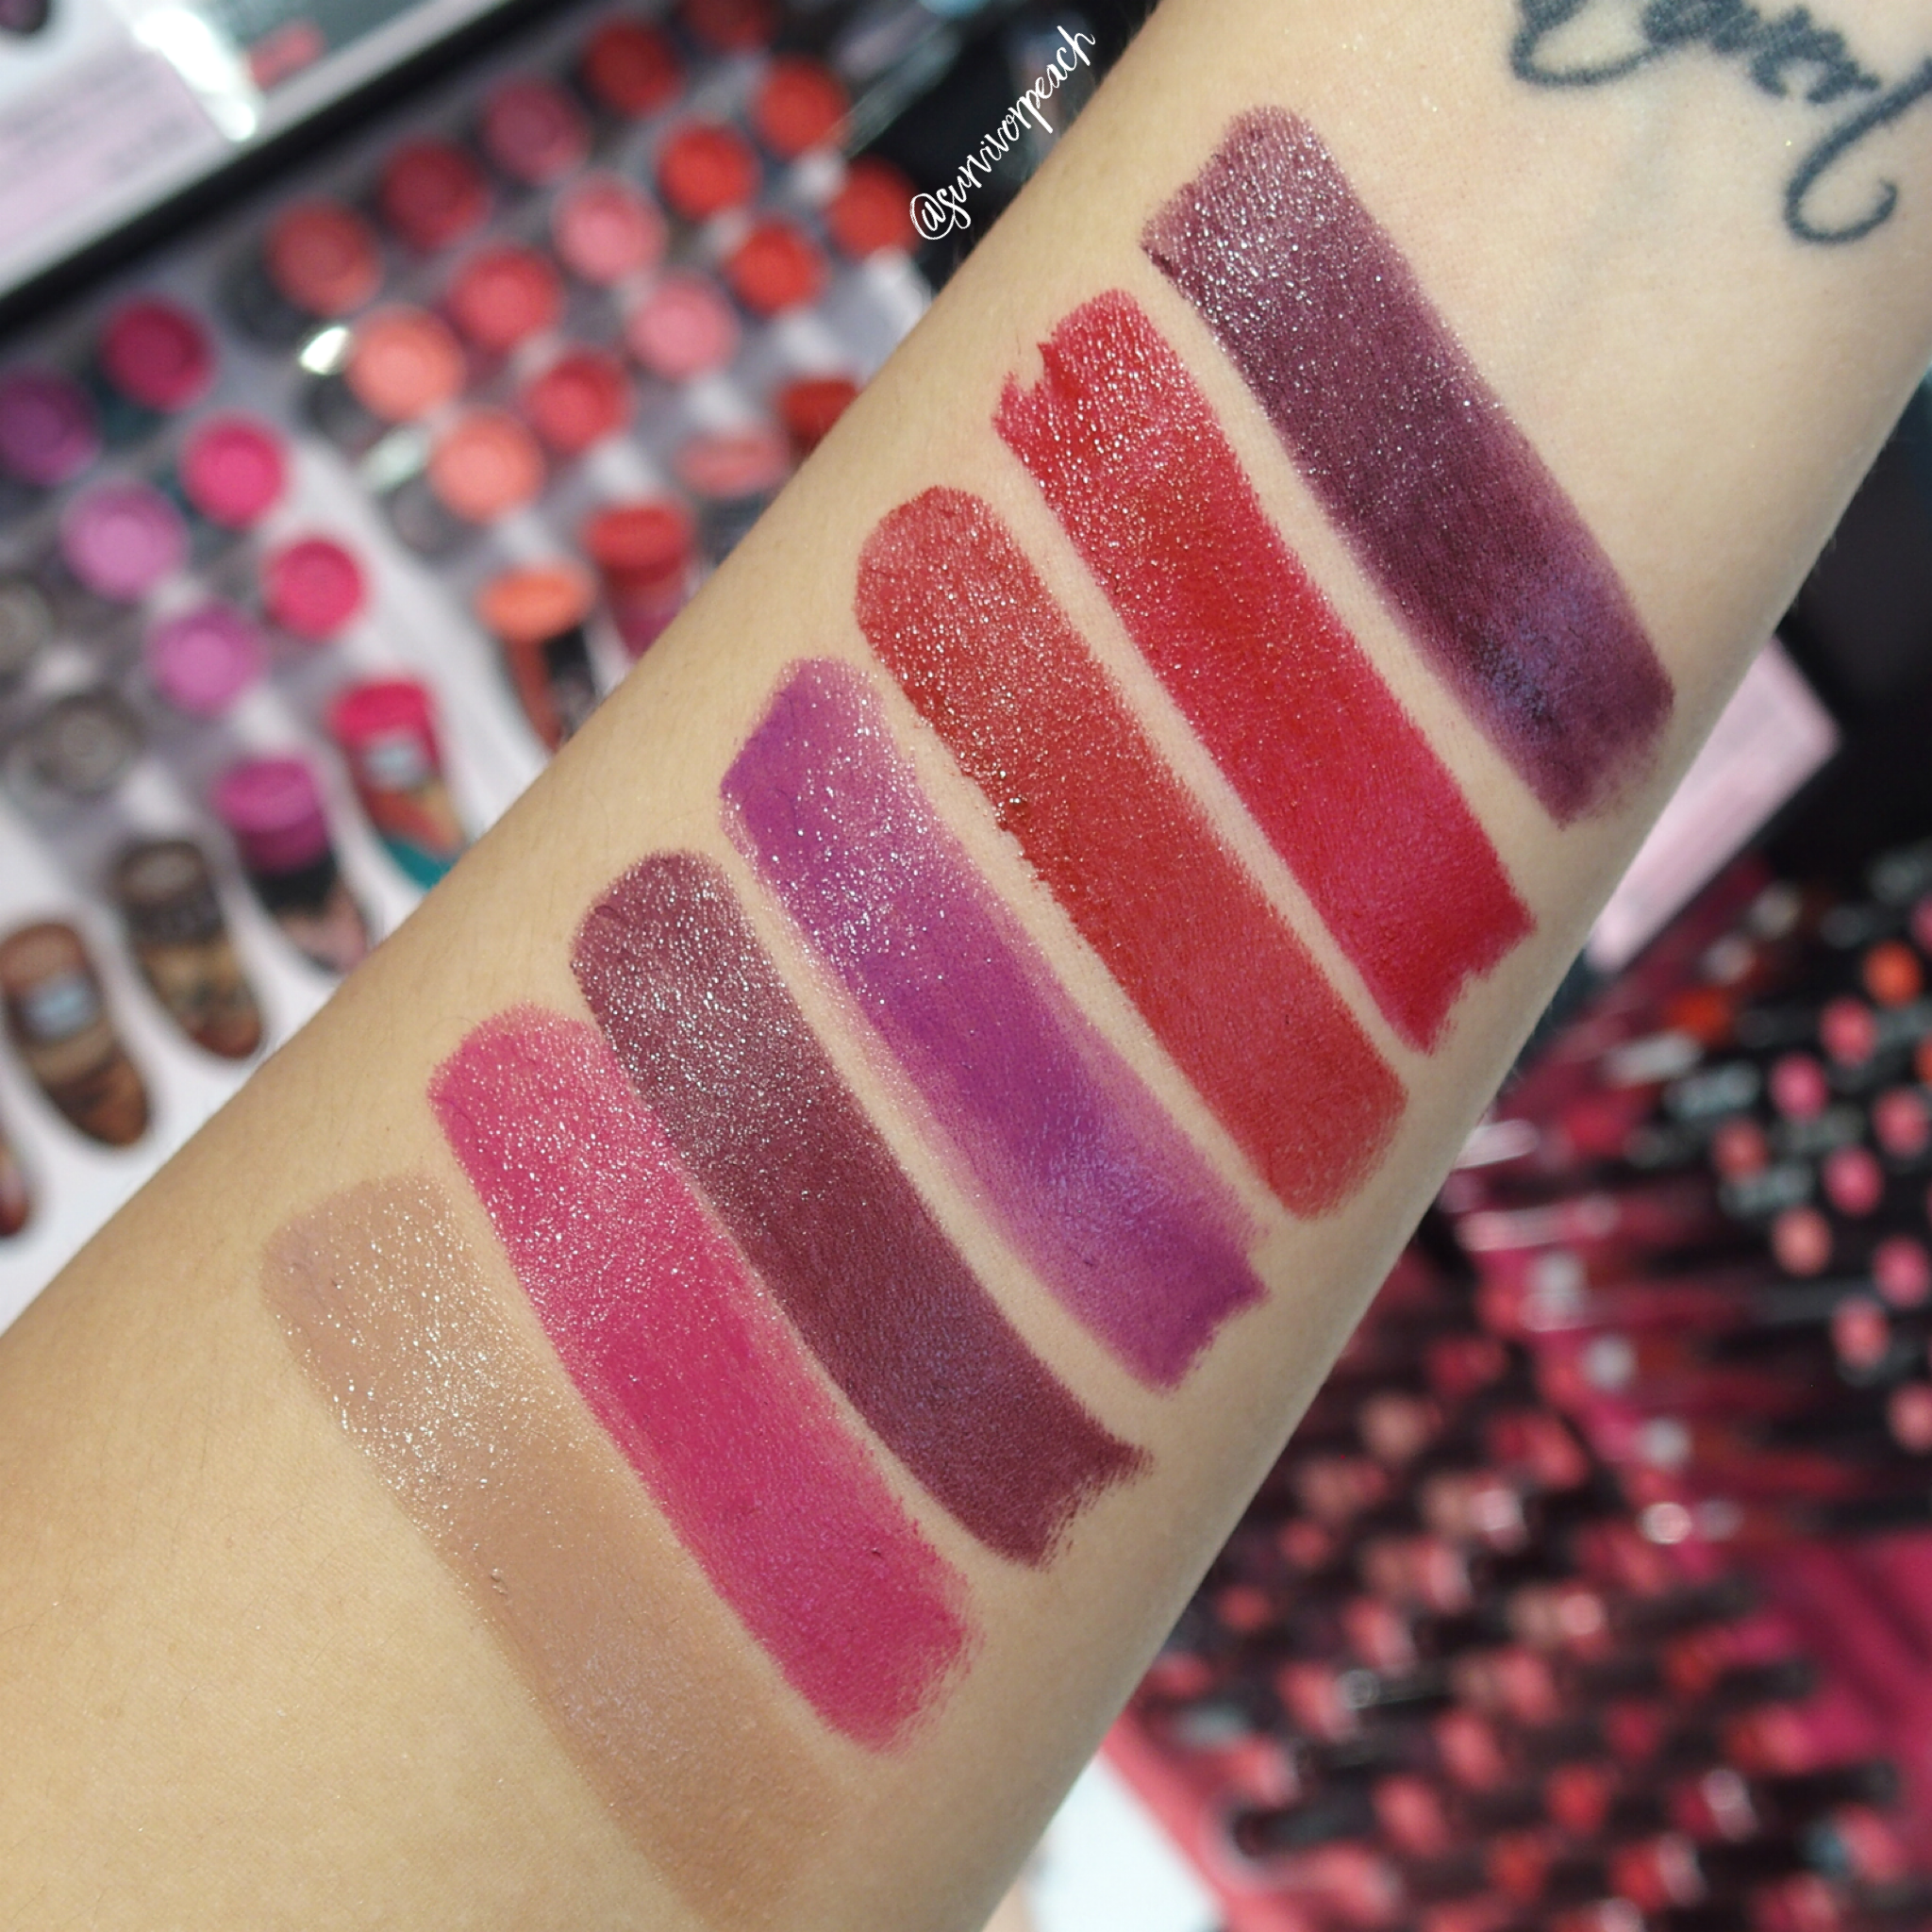 Sephora Collection Lipstick Rouge Lacquer Lipstick swatches- L01 Power Suit, L02 Wicked Smart, L04 Empowered, L05 What's My Secret?, L06 Who Runs the World?, L07 Elegance, L21 No Regrets